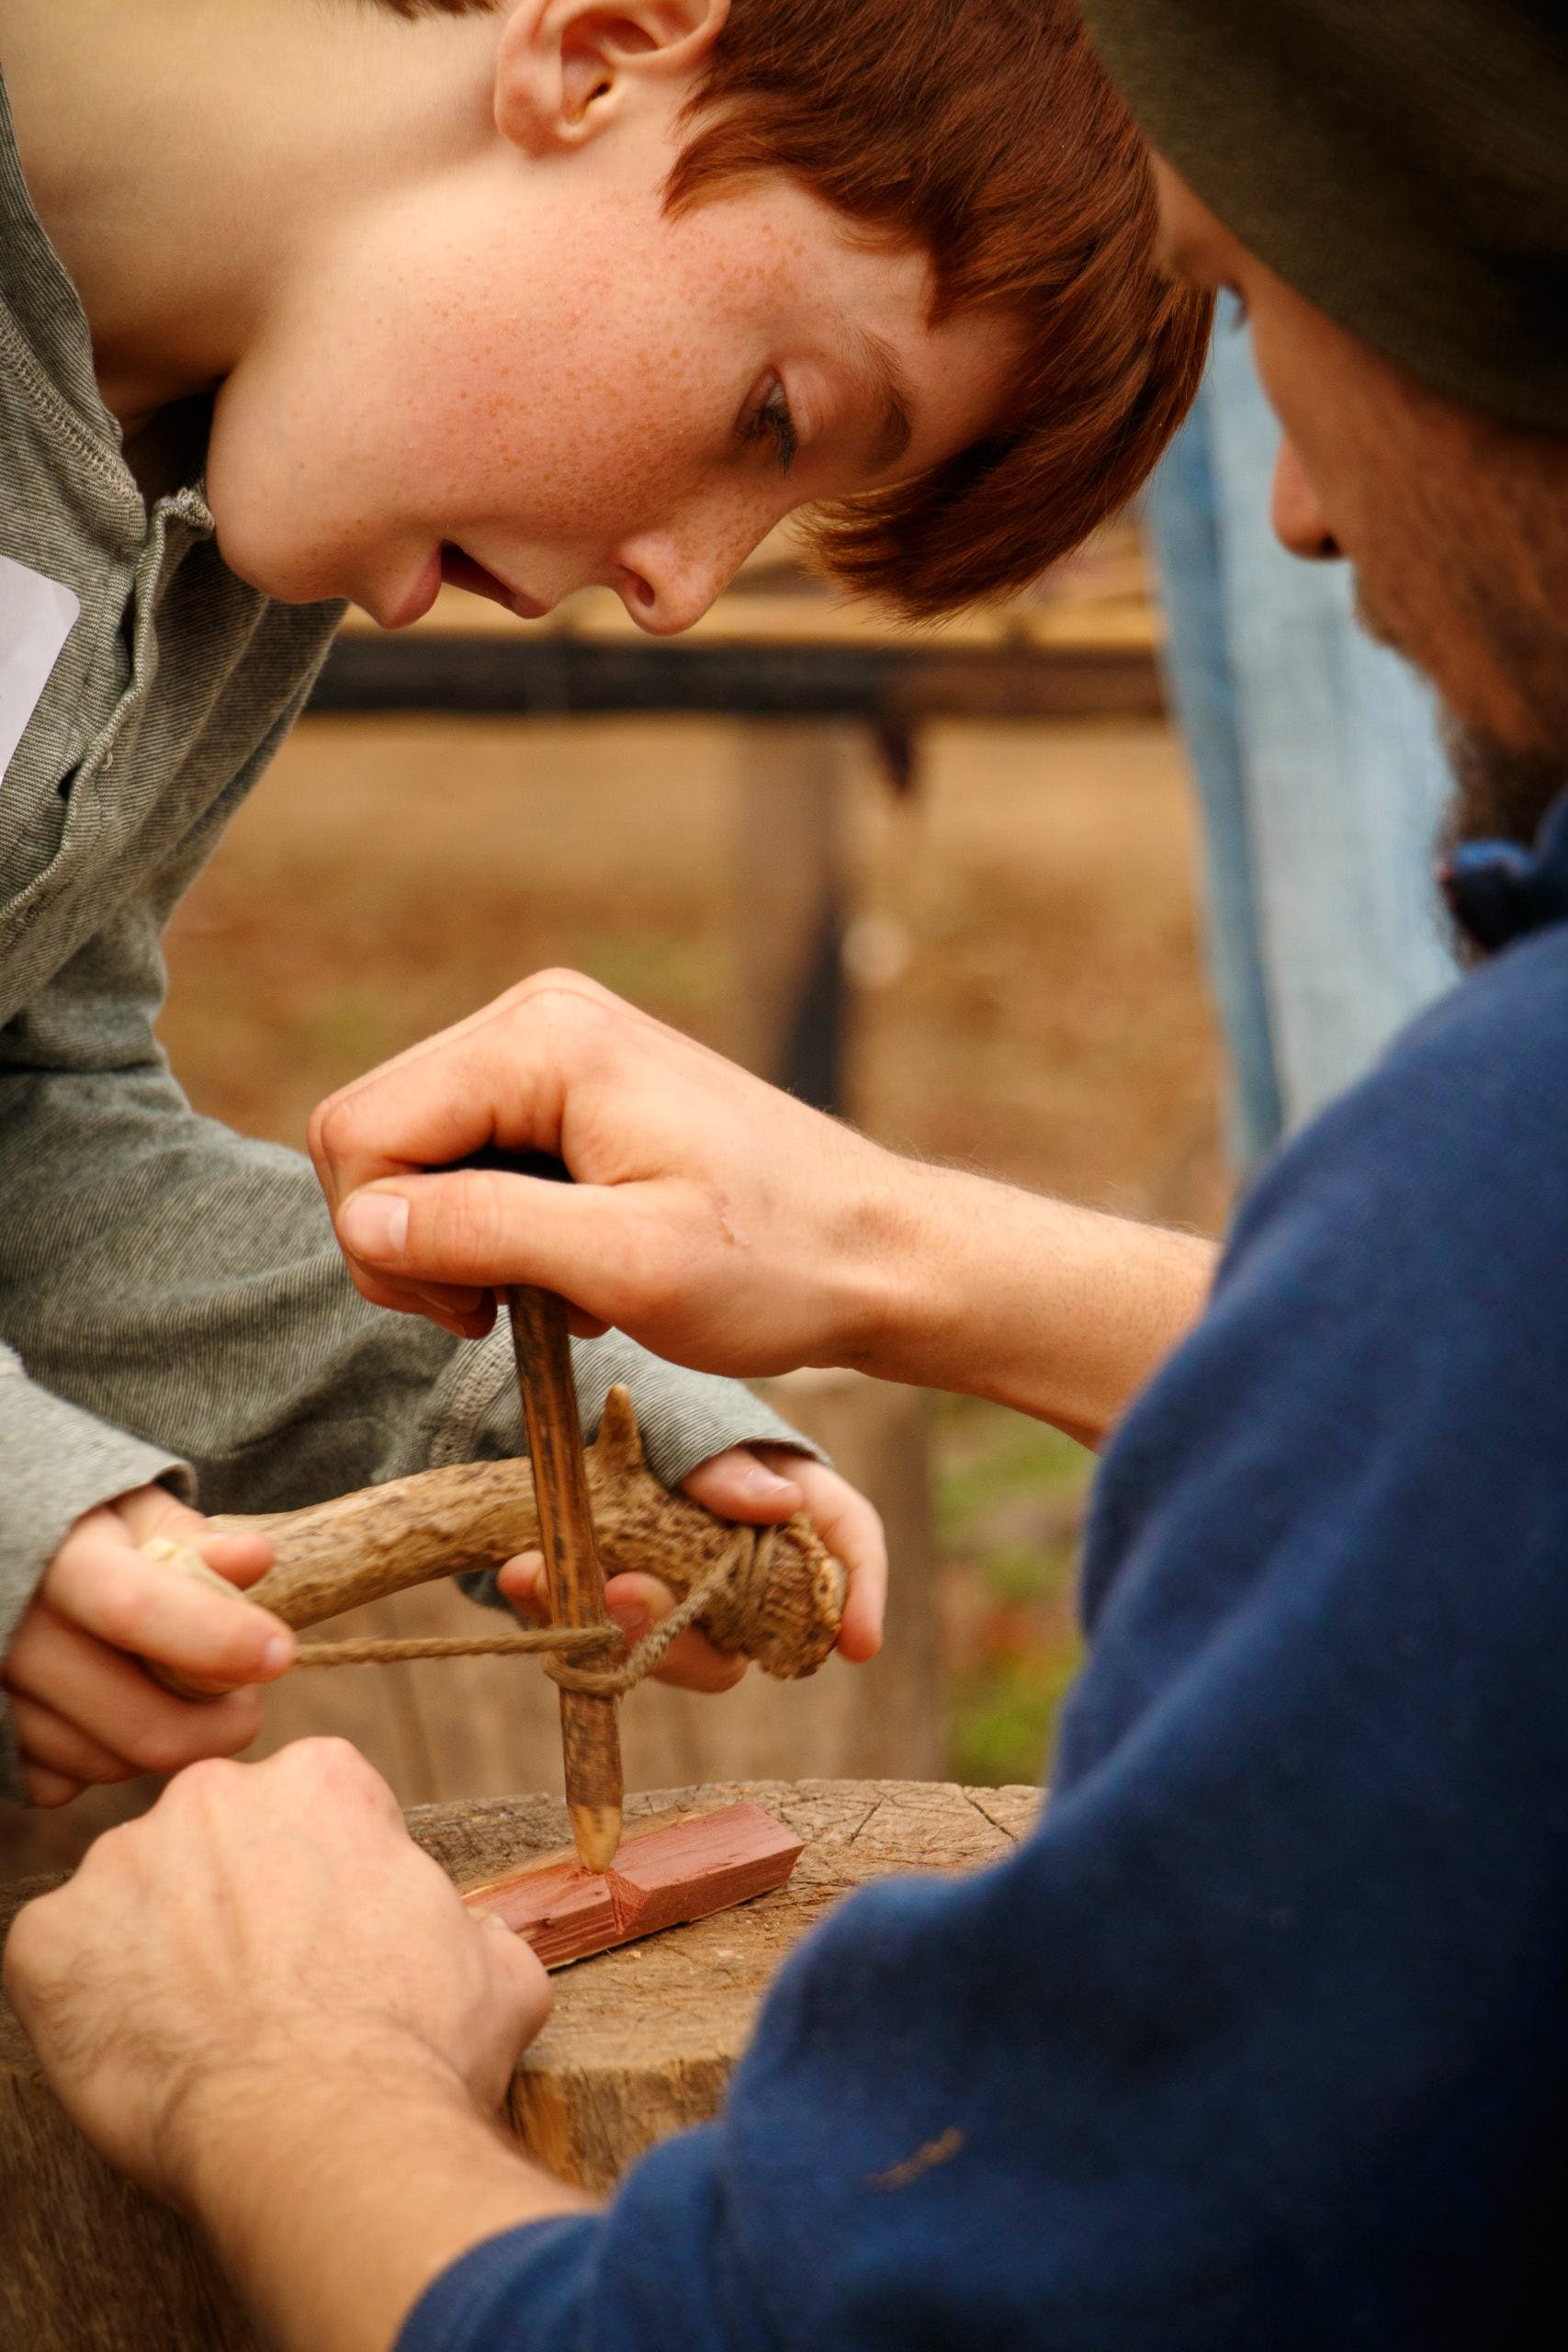 HSMC staff person teaches a young visitor how to start a fire with a bowdrill